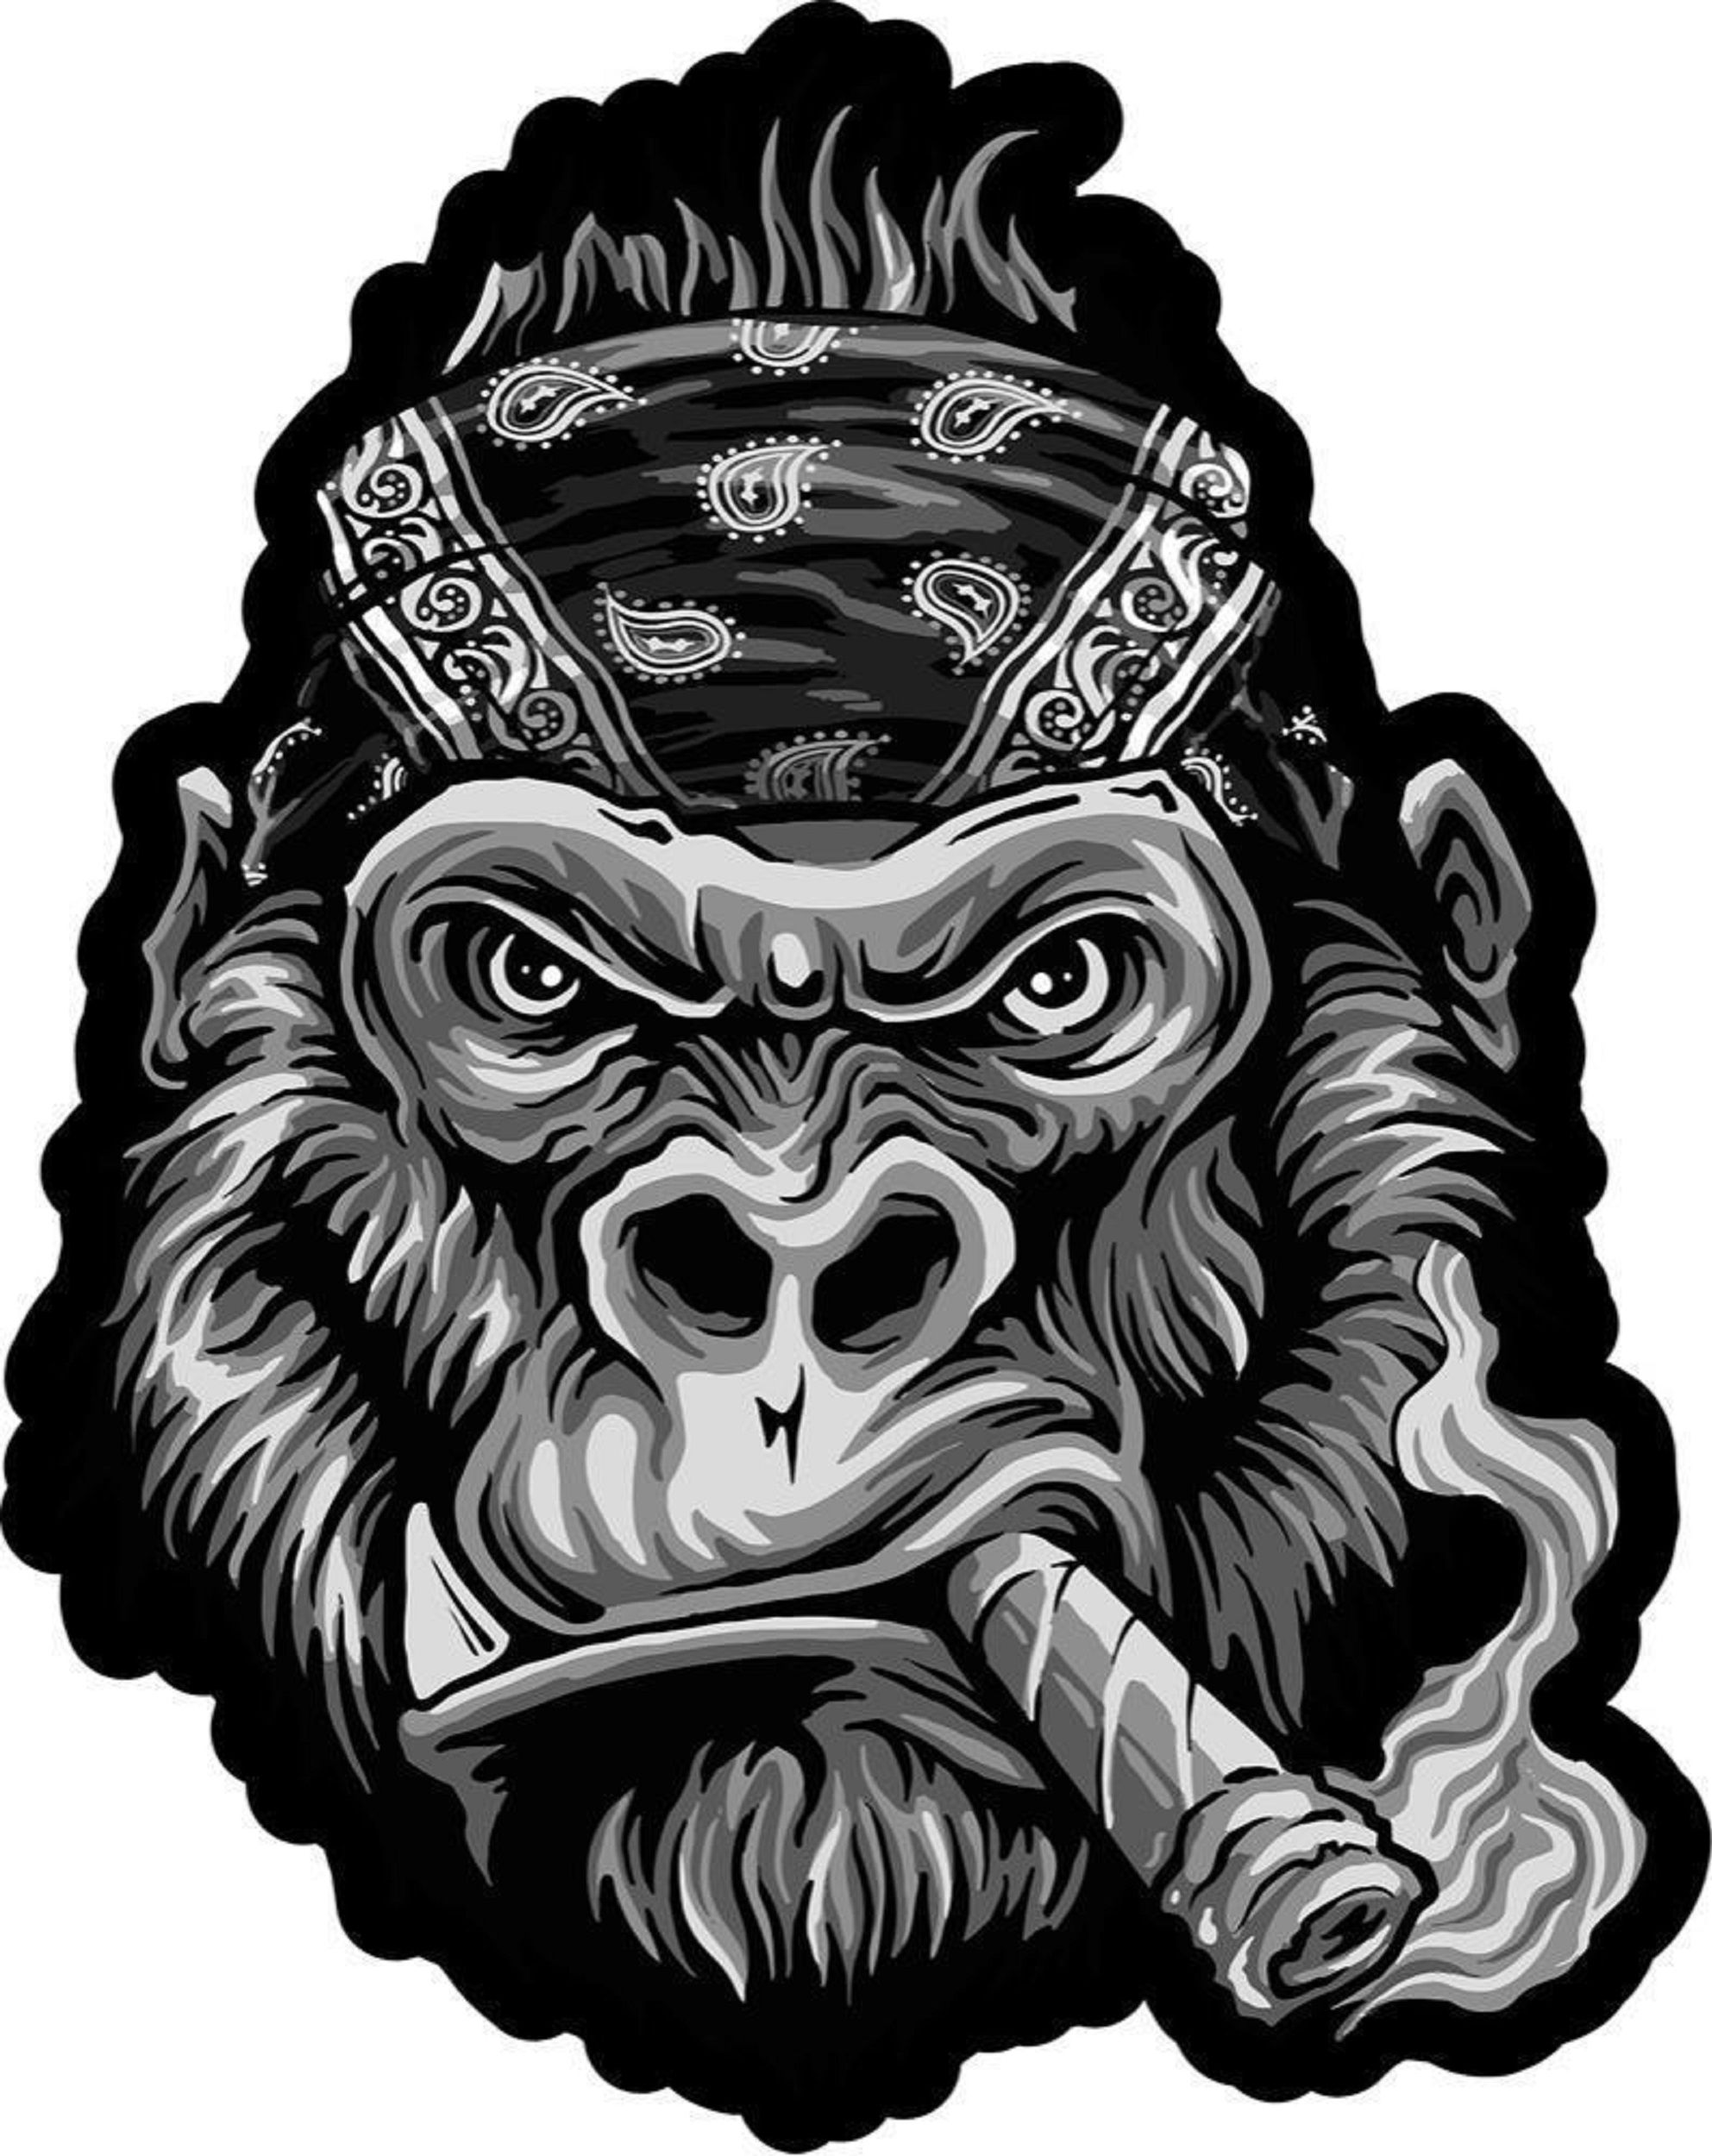 39 gorilla biker head 39 tattoo design and or http. Black Bedroom Furniture Sets. Home Design Ideas